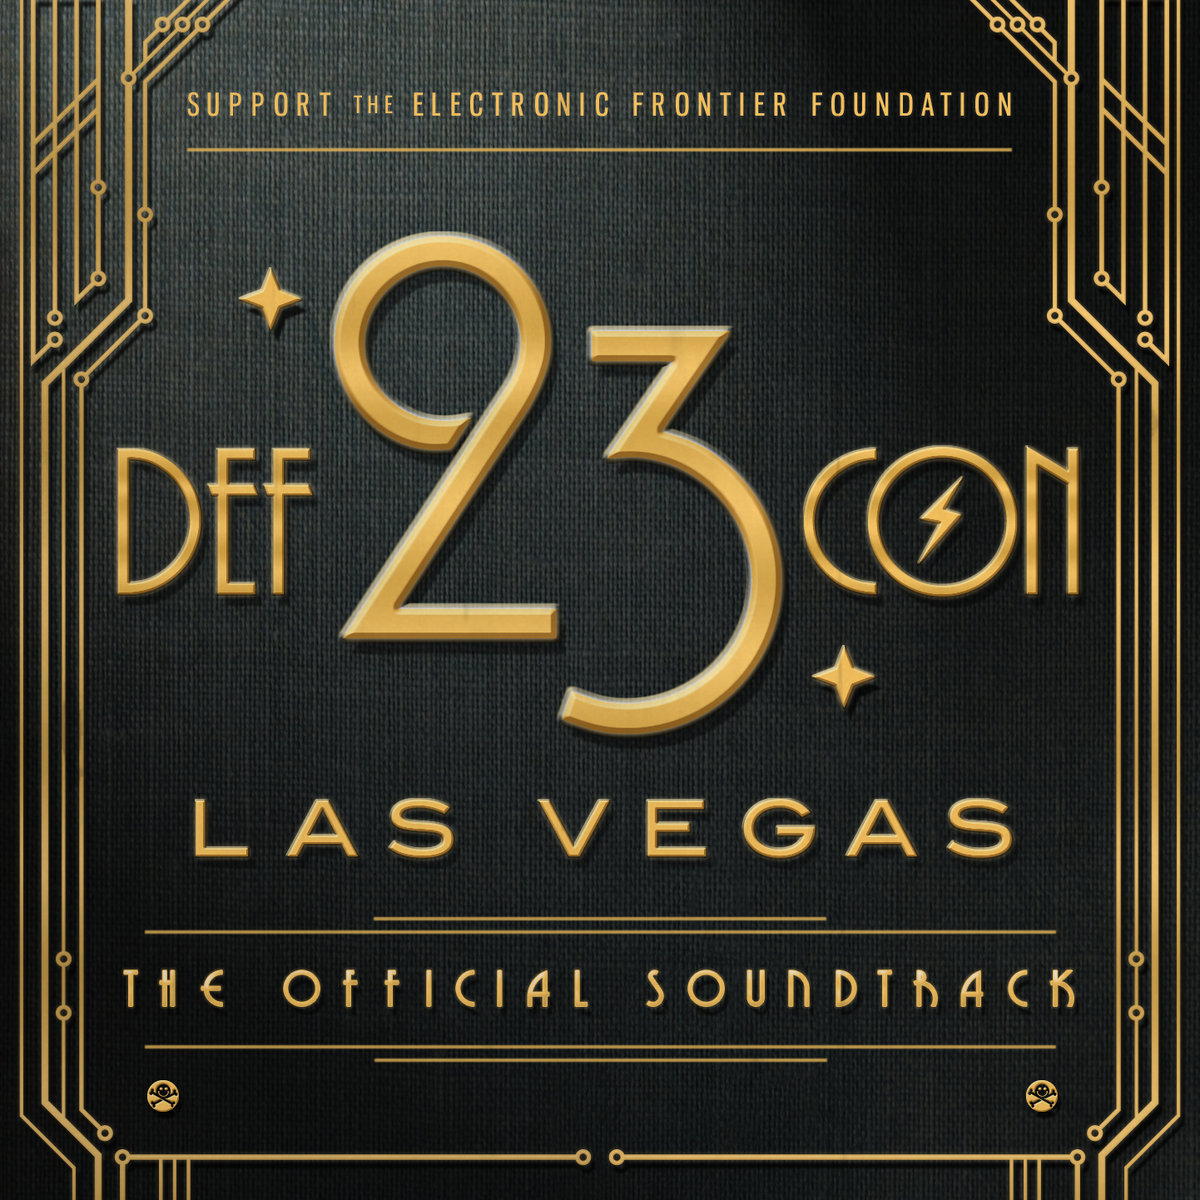 Liquid Stranger feat. Jazzmin - Play @ 'DEF CON 23: The Official Soundtrack' album (bass, charity)